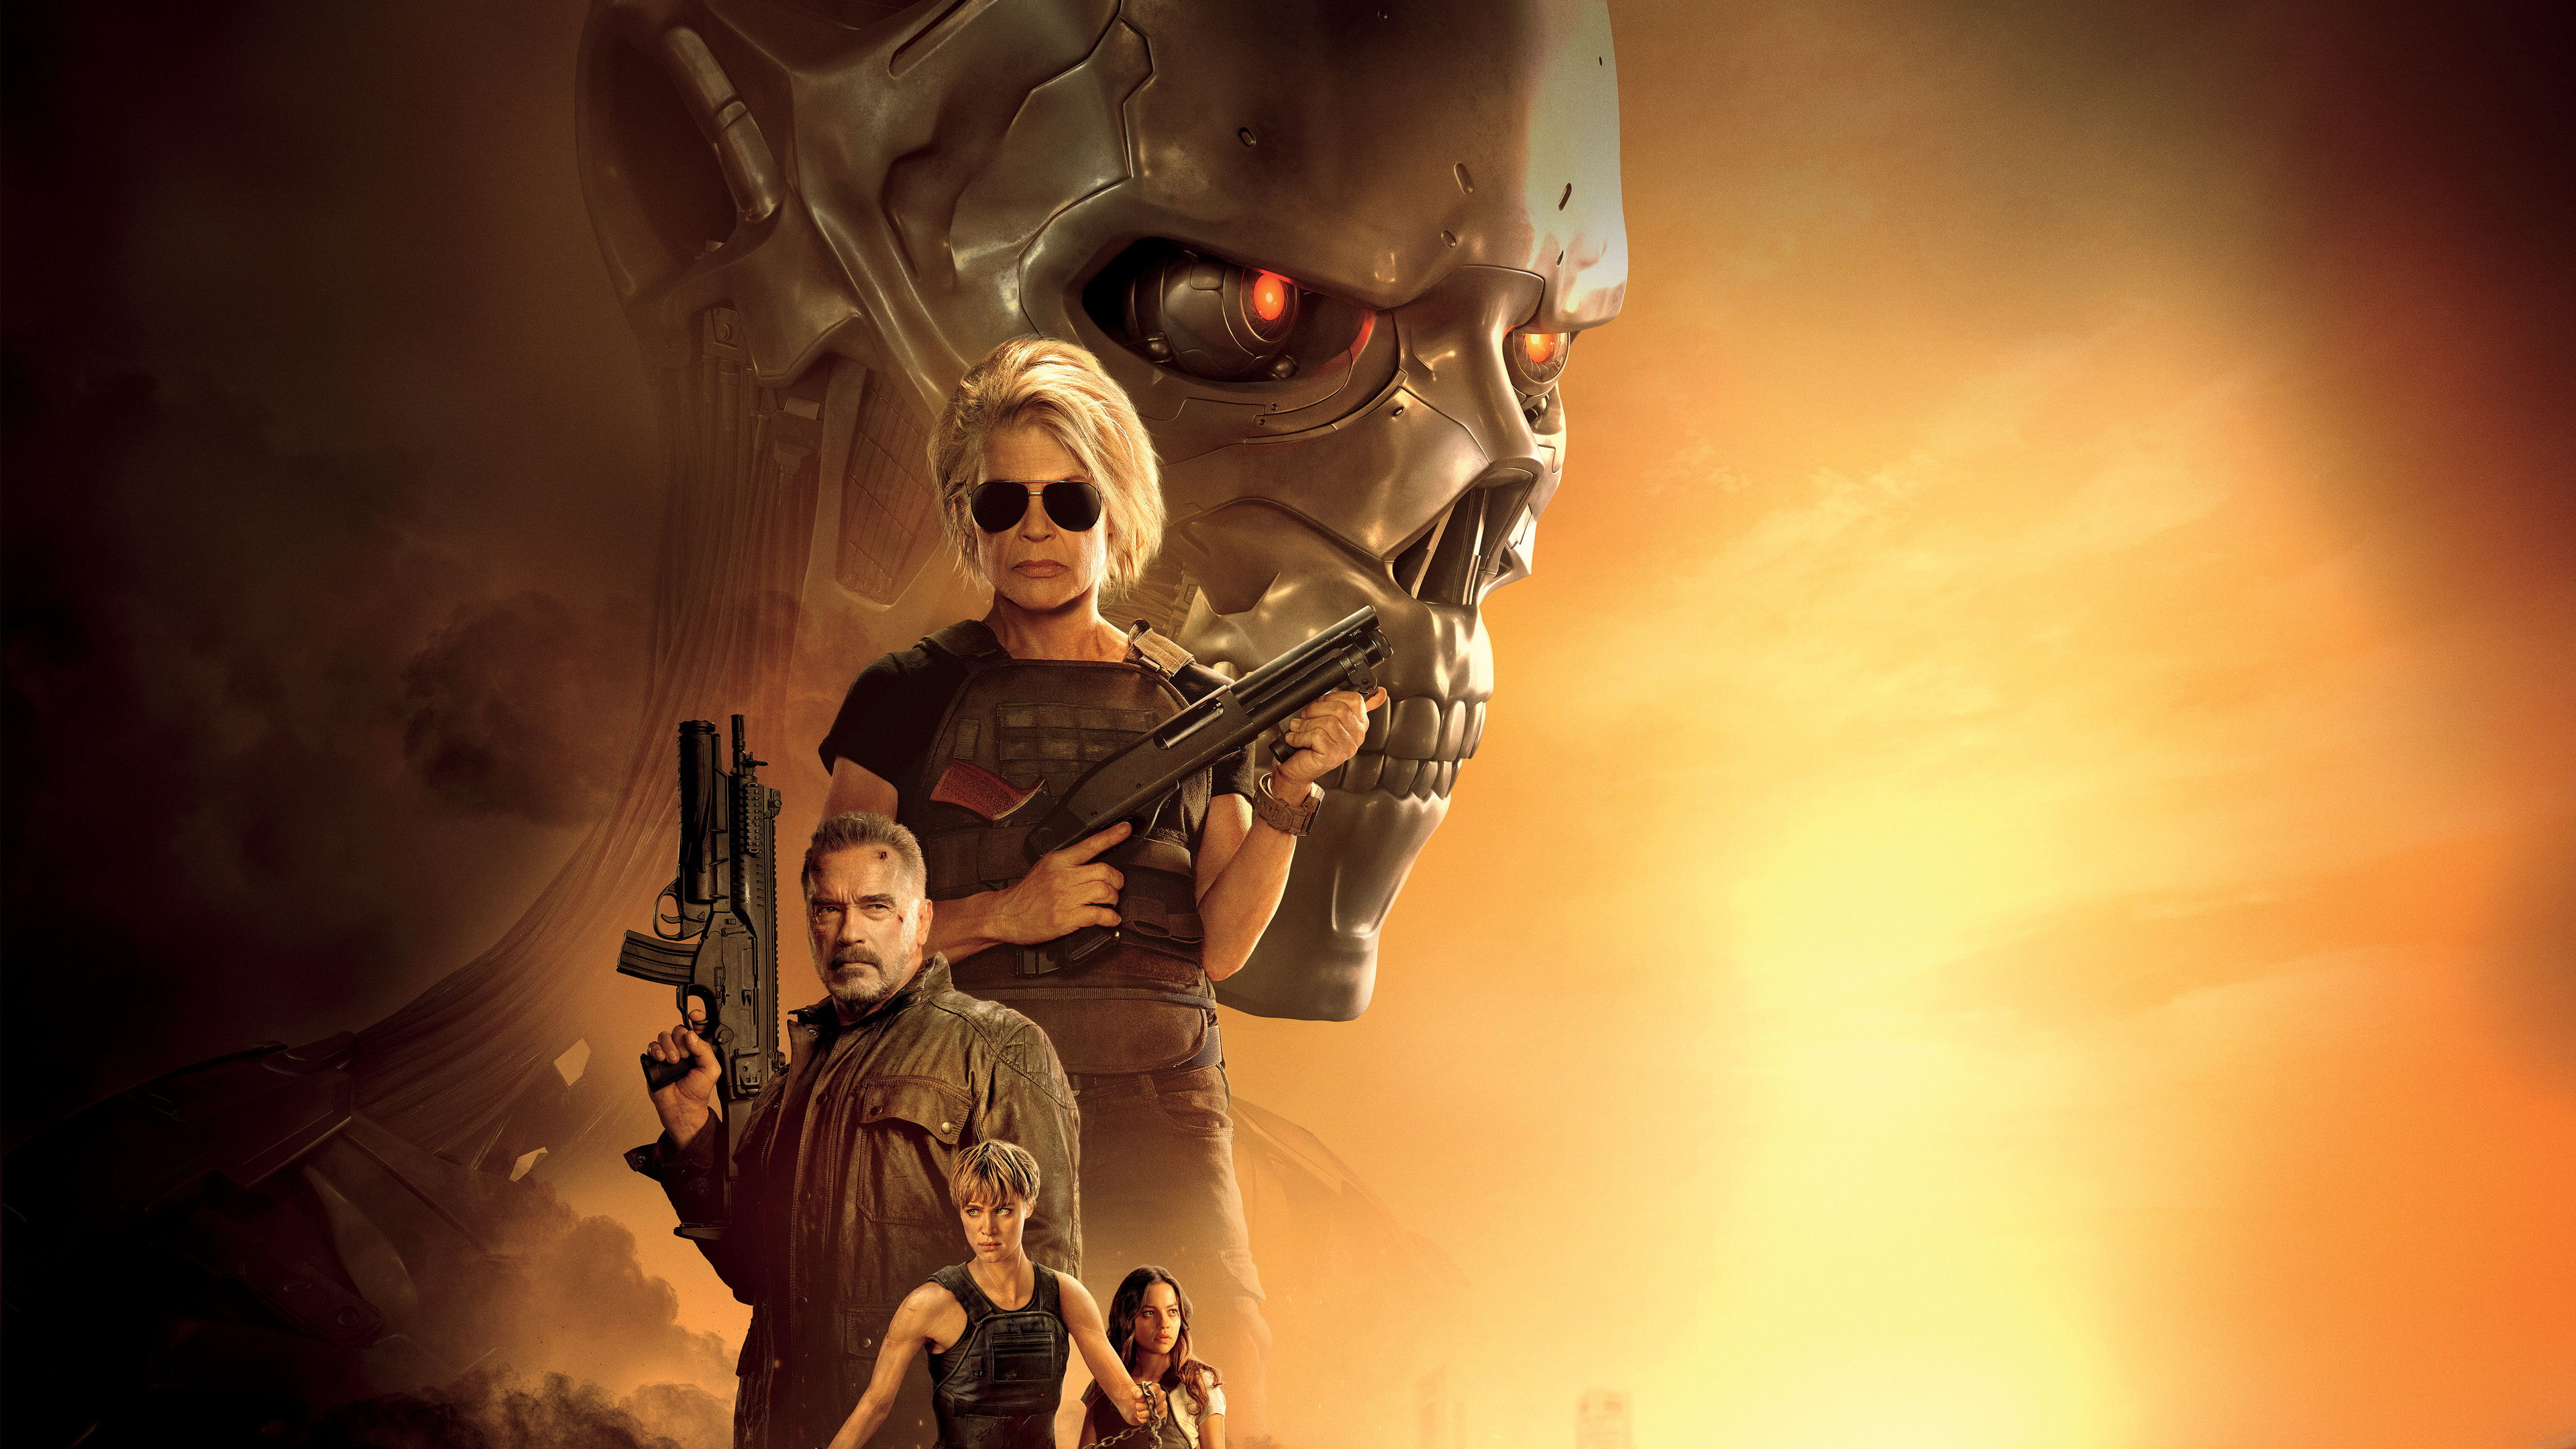 2019 terminator dark fate 1570395311 - 2019 Terminator Dark Fate - terminator wallpapers, terminator dark fate wallpapers, terminator 6 wallpapers, movies wallpapers, hd-wallpapers, arnold schwarzenegger wallpapers, 5k wallpapers, 4k-wallpapers, 2019 movies wallpapers